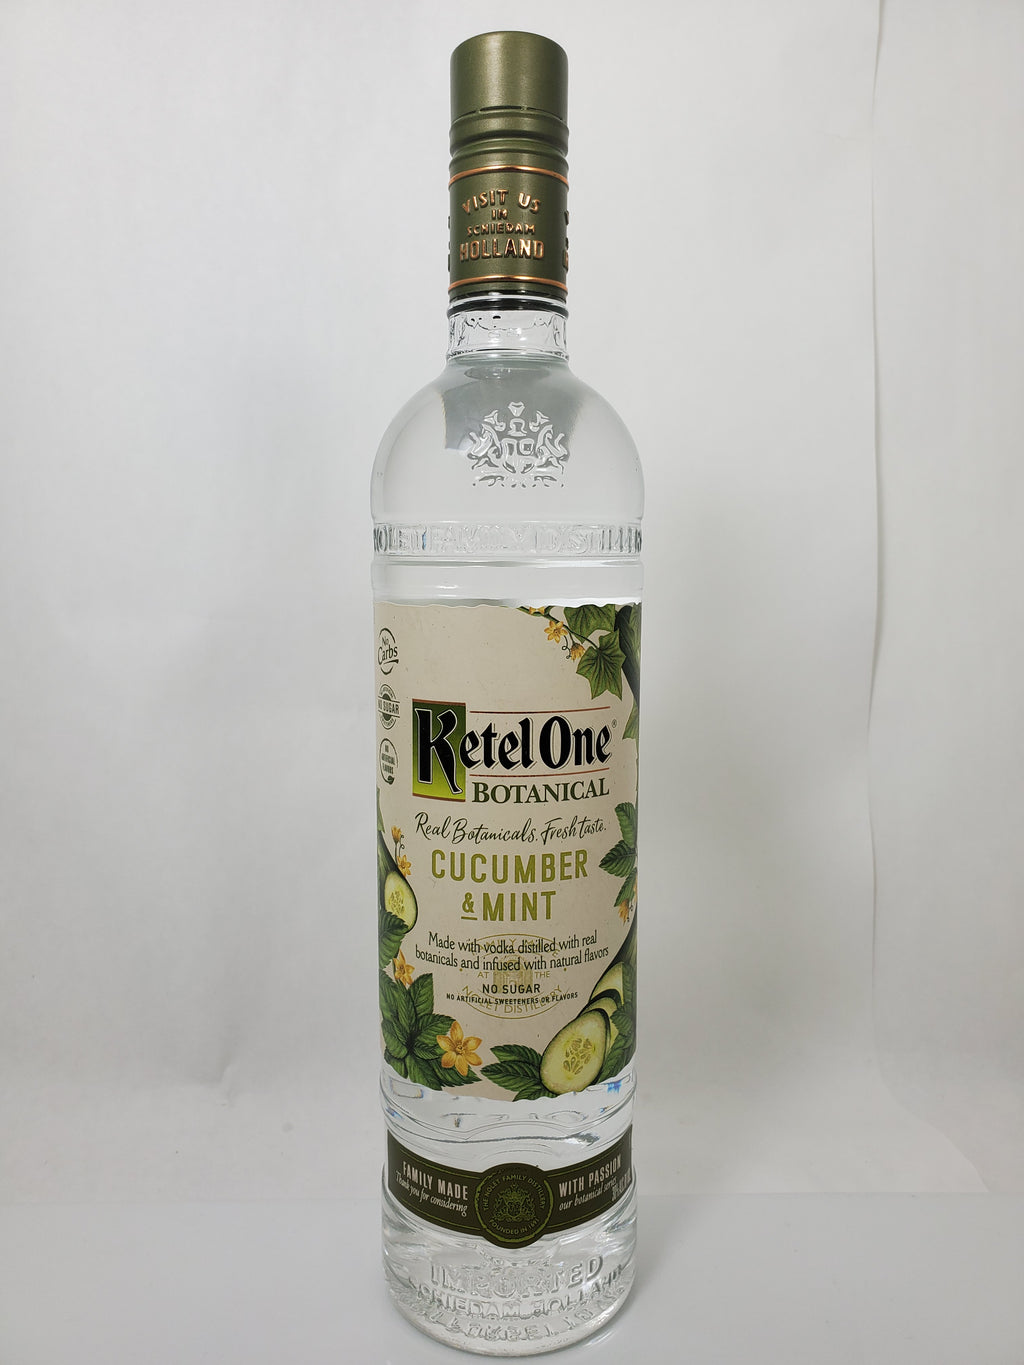 Ketel One Botanical Cucumber & Mint Vodka 750 ml